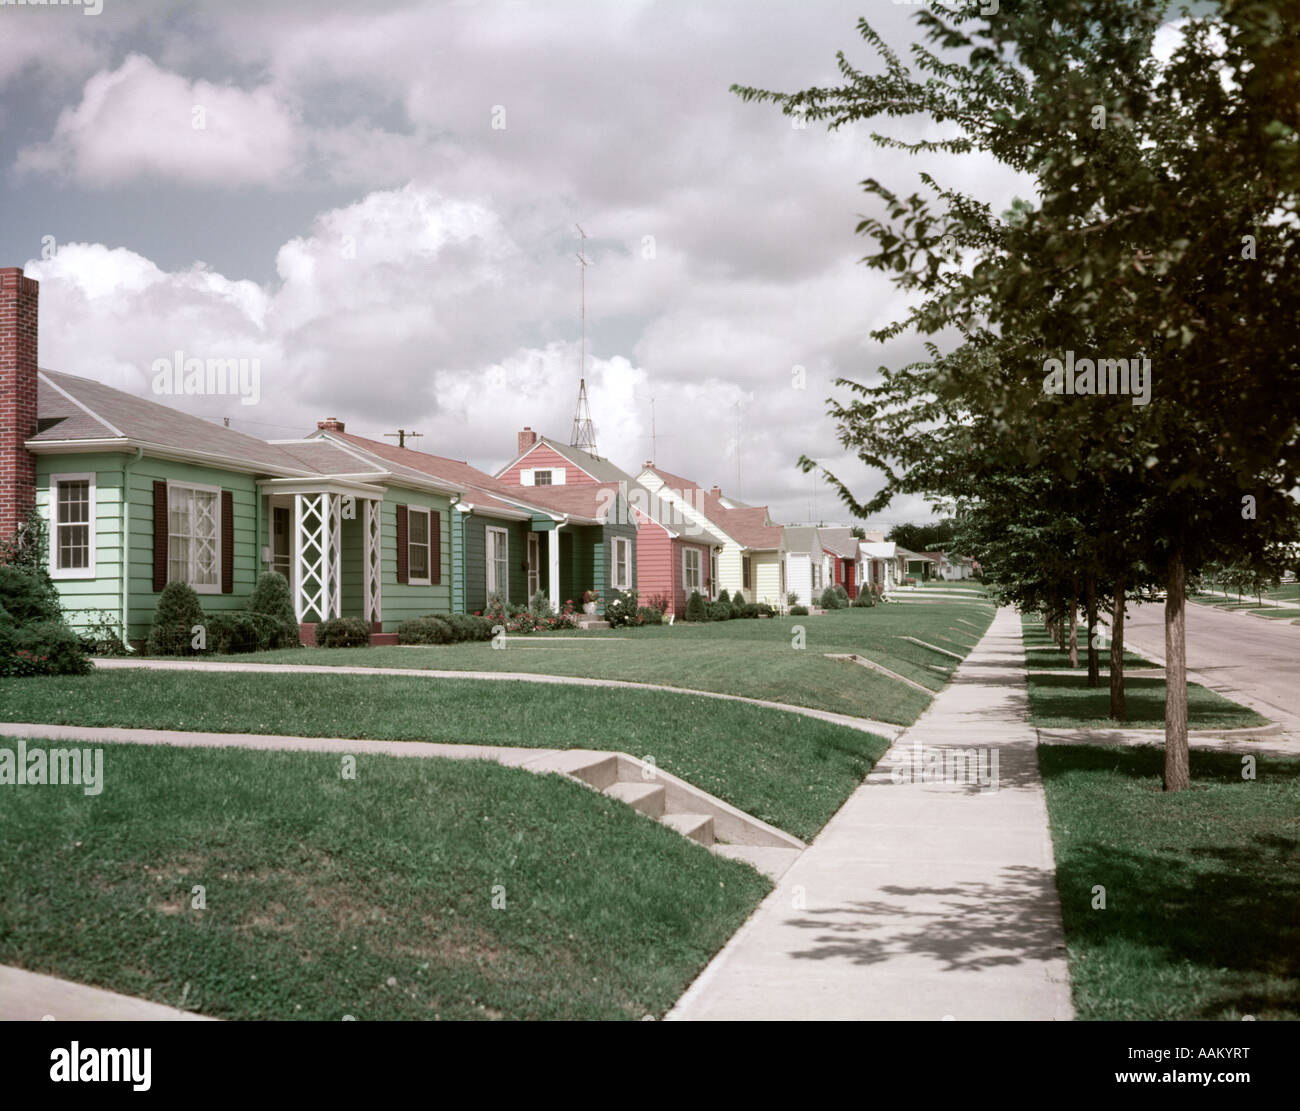 1950s House 1950s houses stock photos & 1950s houses stock images - alamy